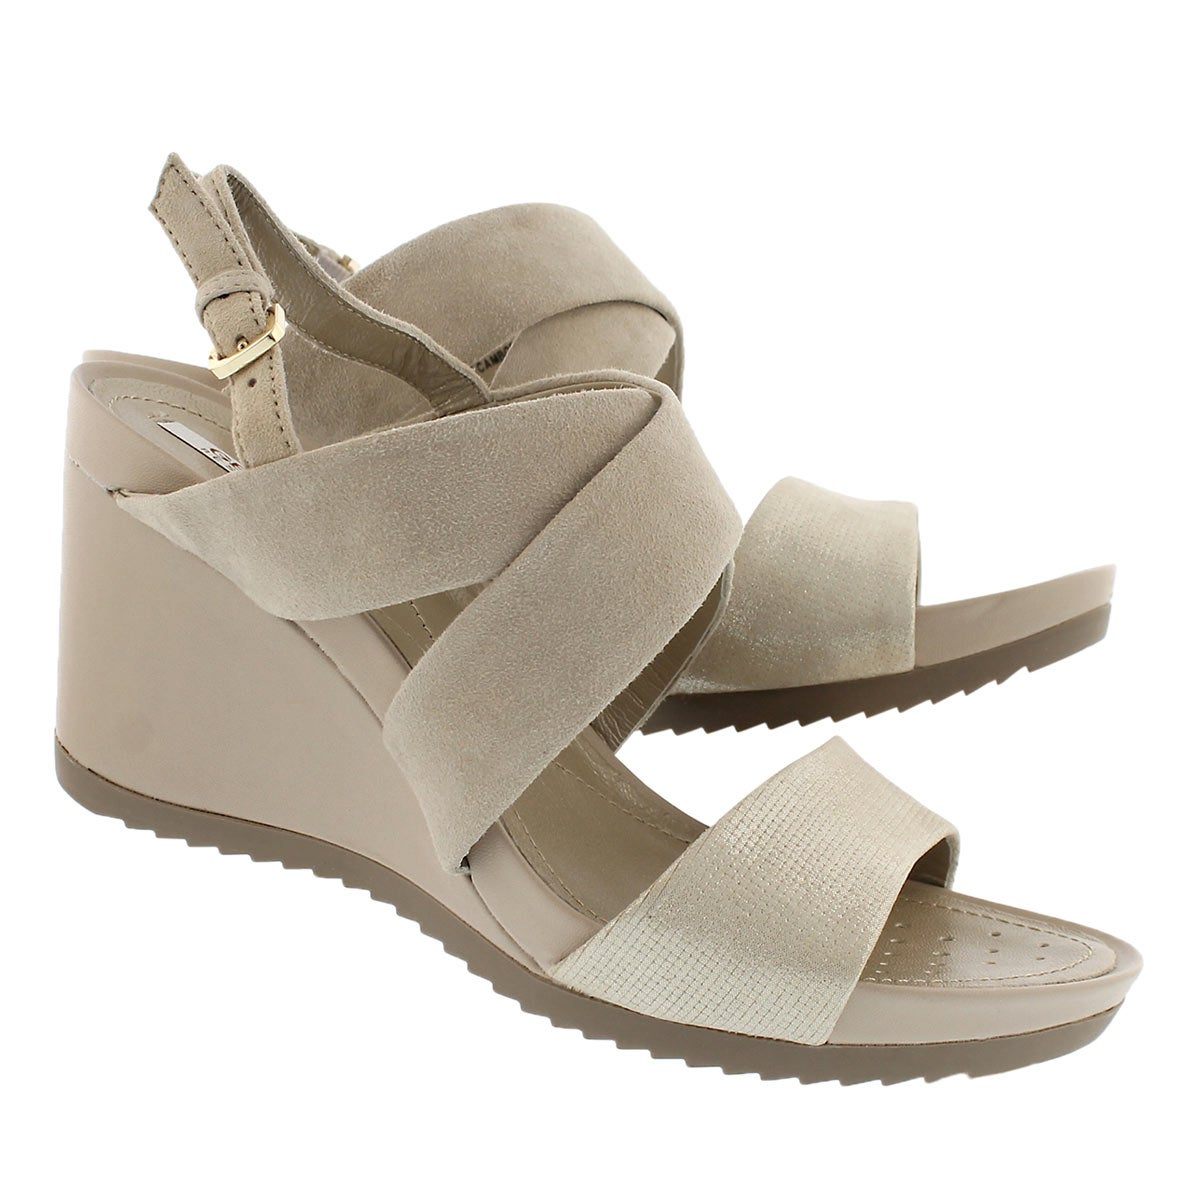 Lds New Rorie taupe/gld wedge sandal